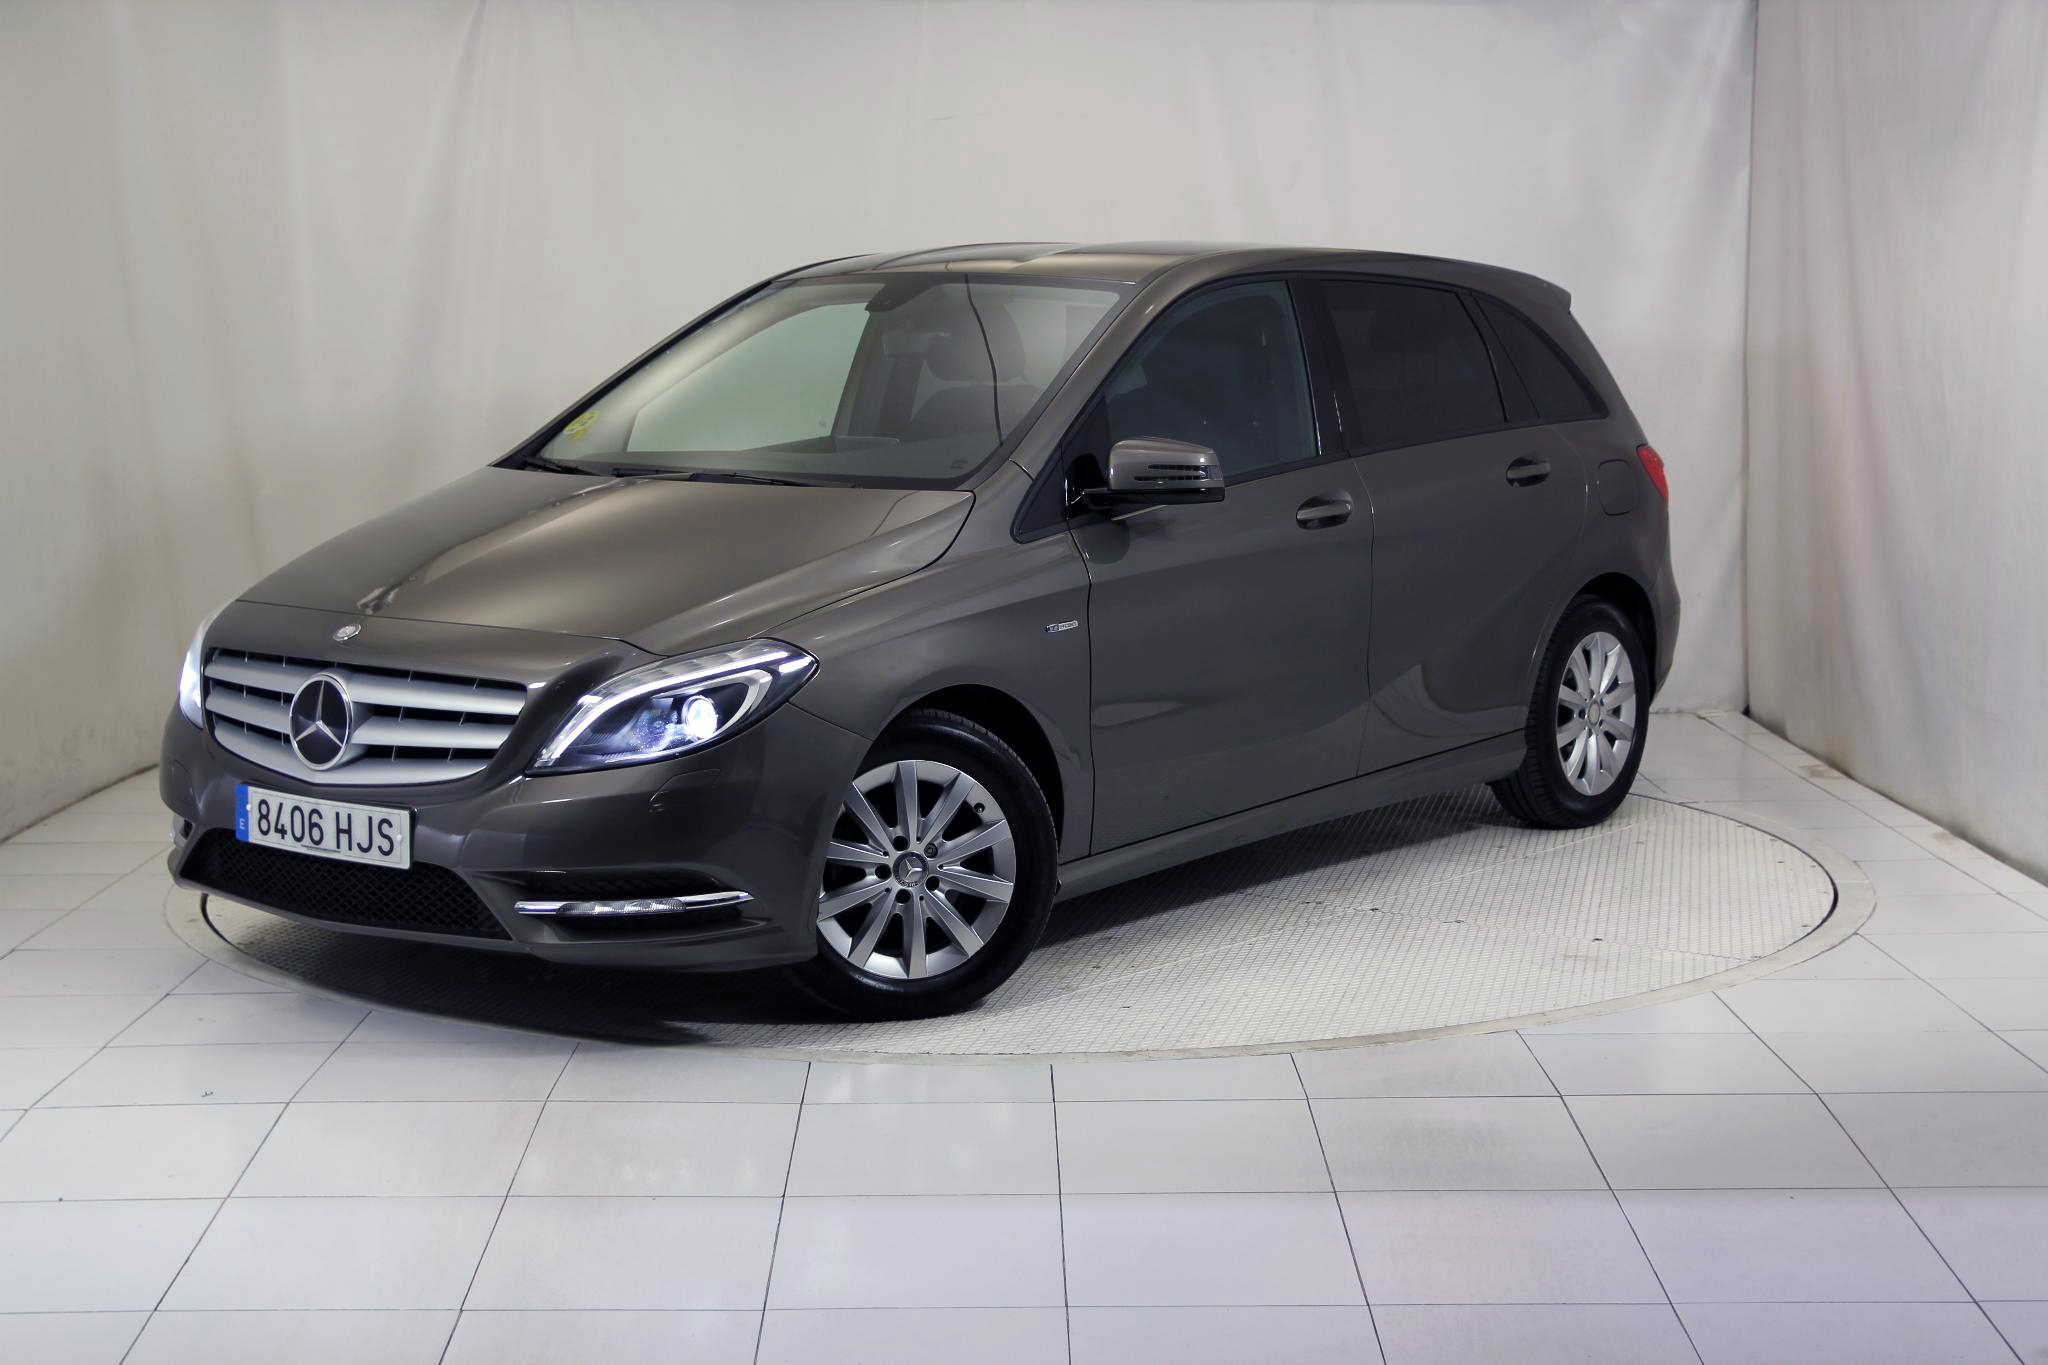 Mercedes-Benz Clase B CLASE B 180 CDI BLUE EFFICIENCY 5P imagen 2